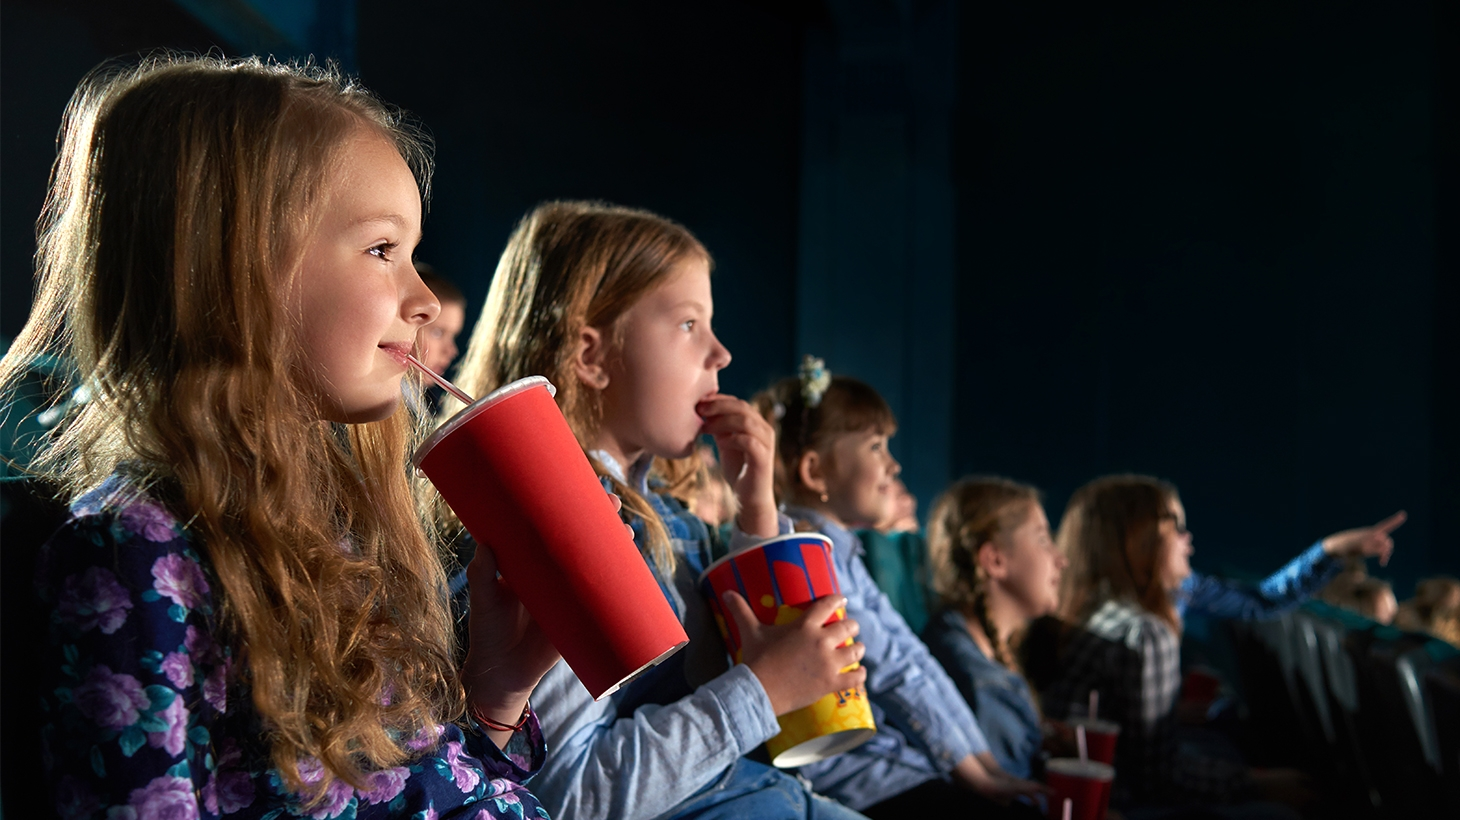 Group of kids watching a movie while eating popcorn and drinking soda